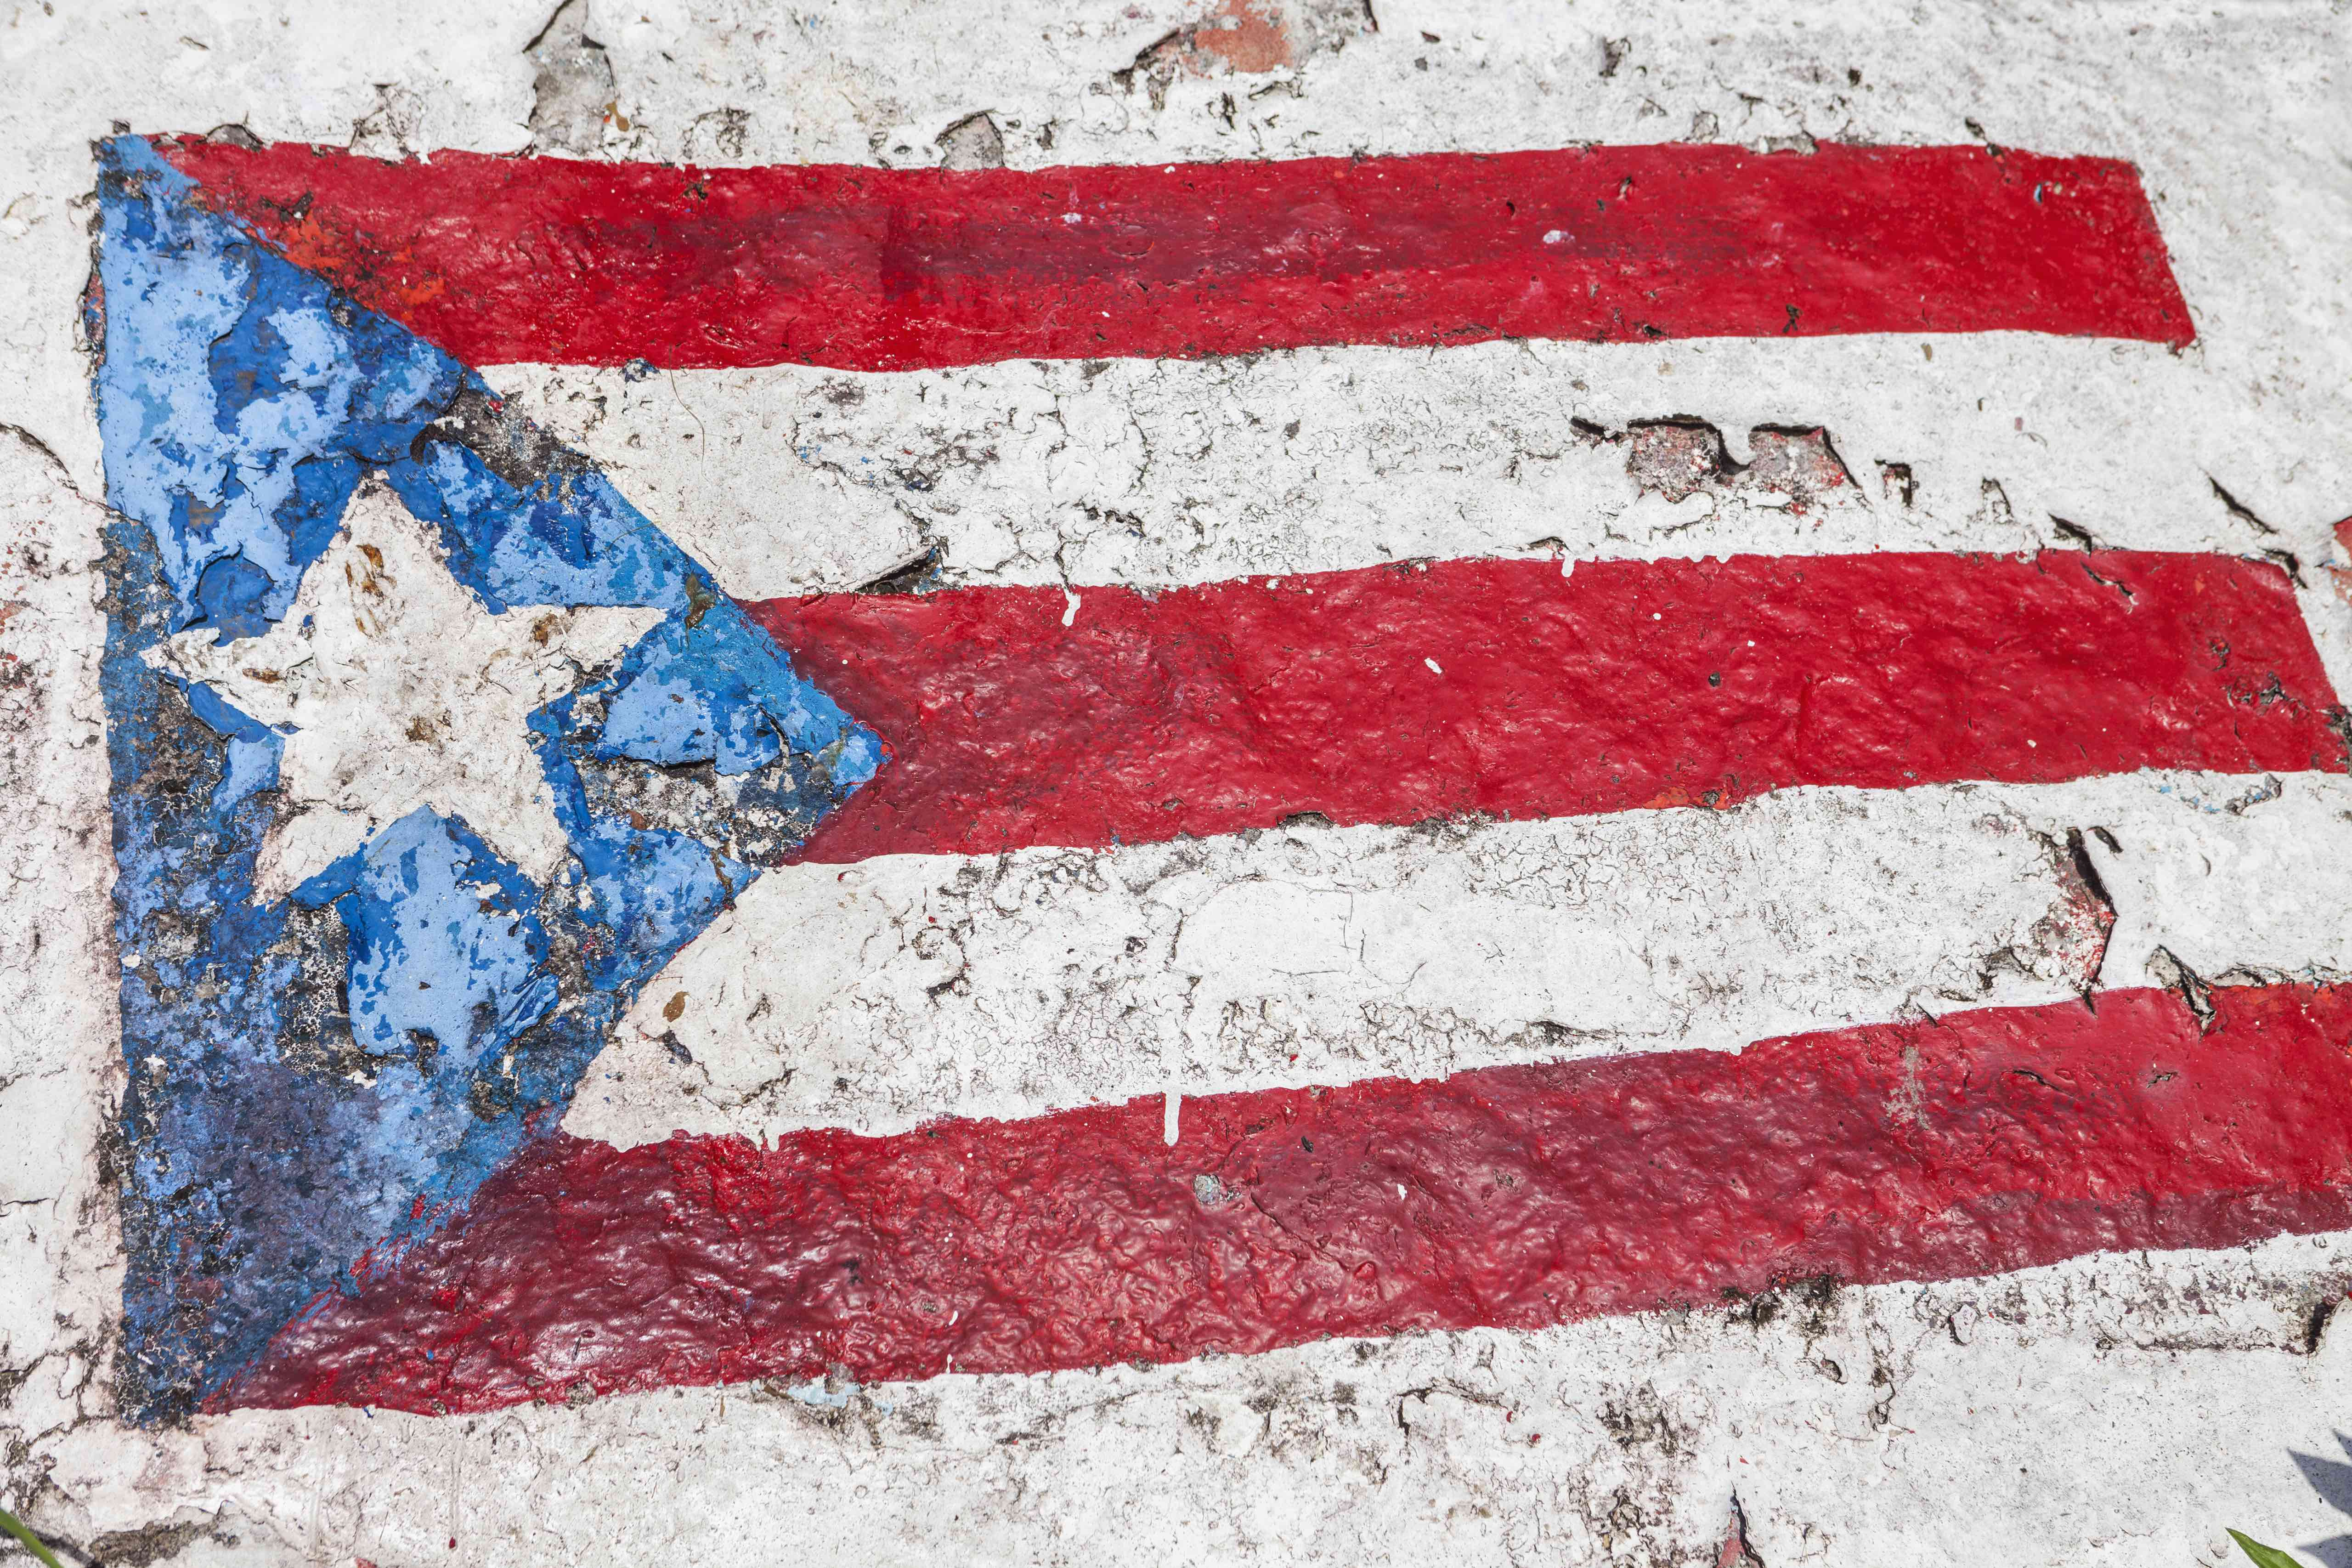 5 Powerful Statements Puerto Ricans Made on the Anniversary of María